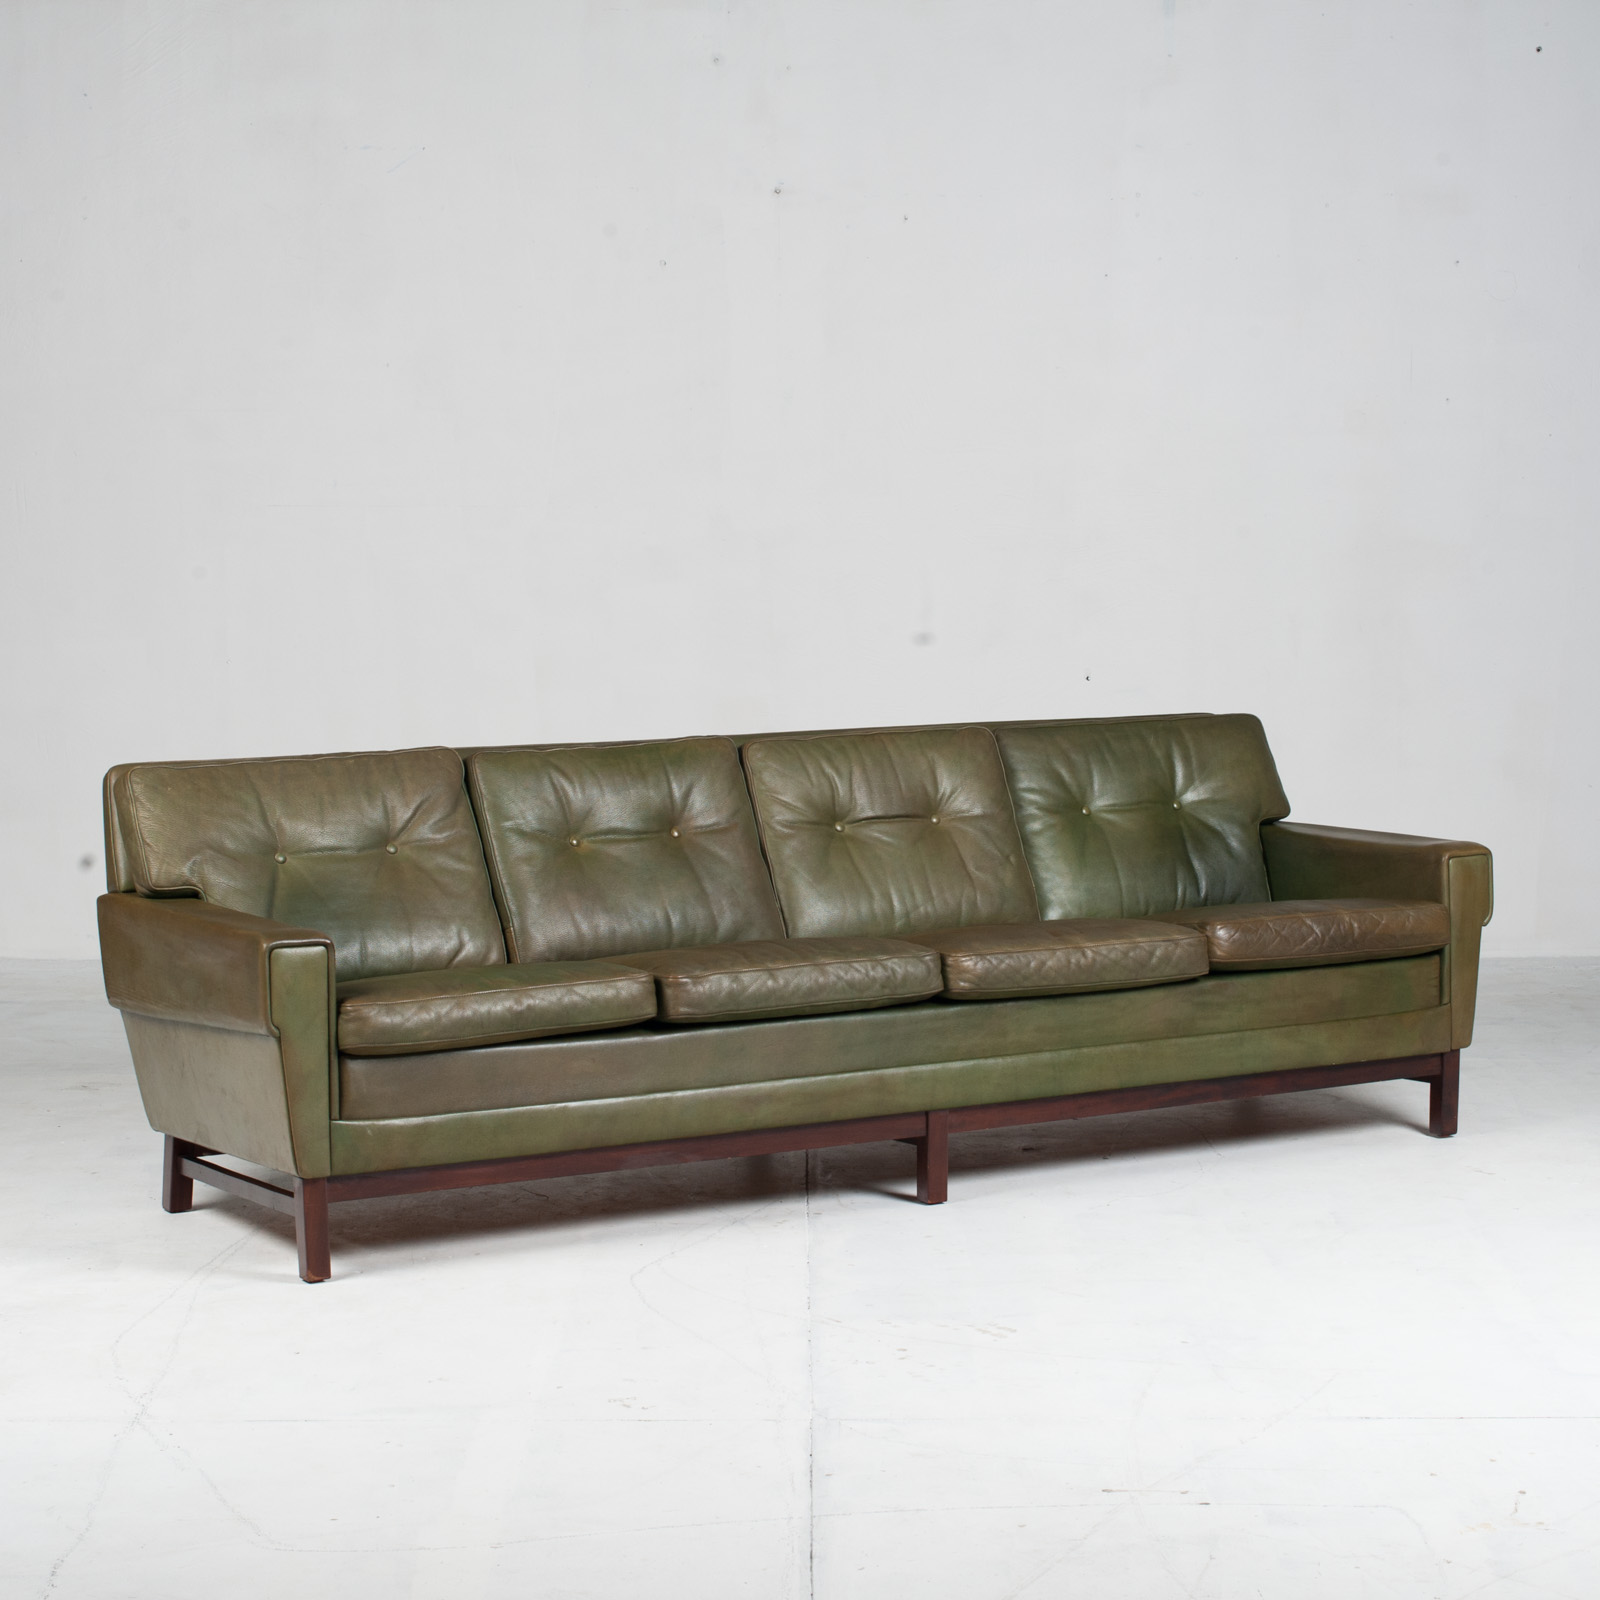 4 Seat Sofa In Olive Leather 1960s Denmark 02